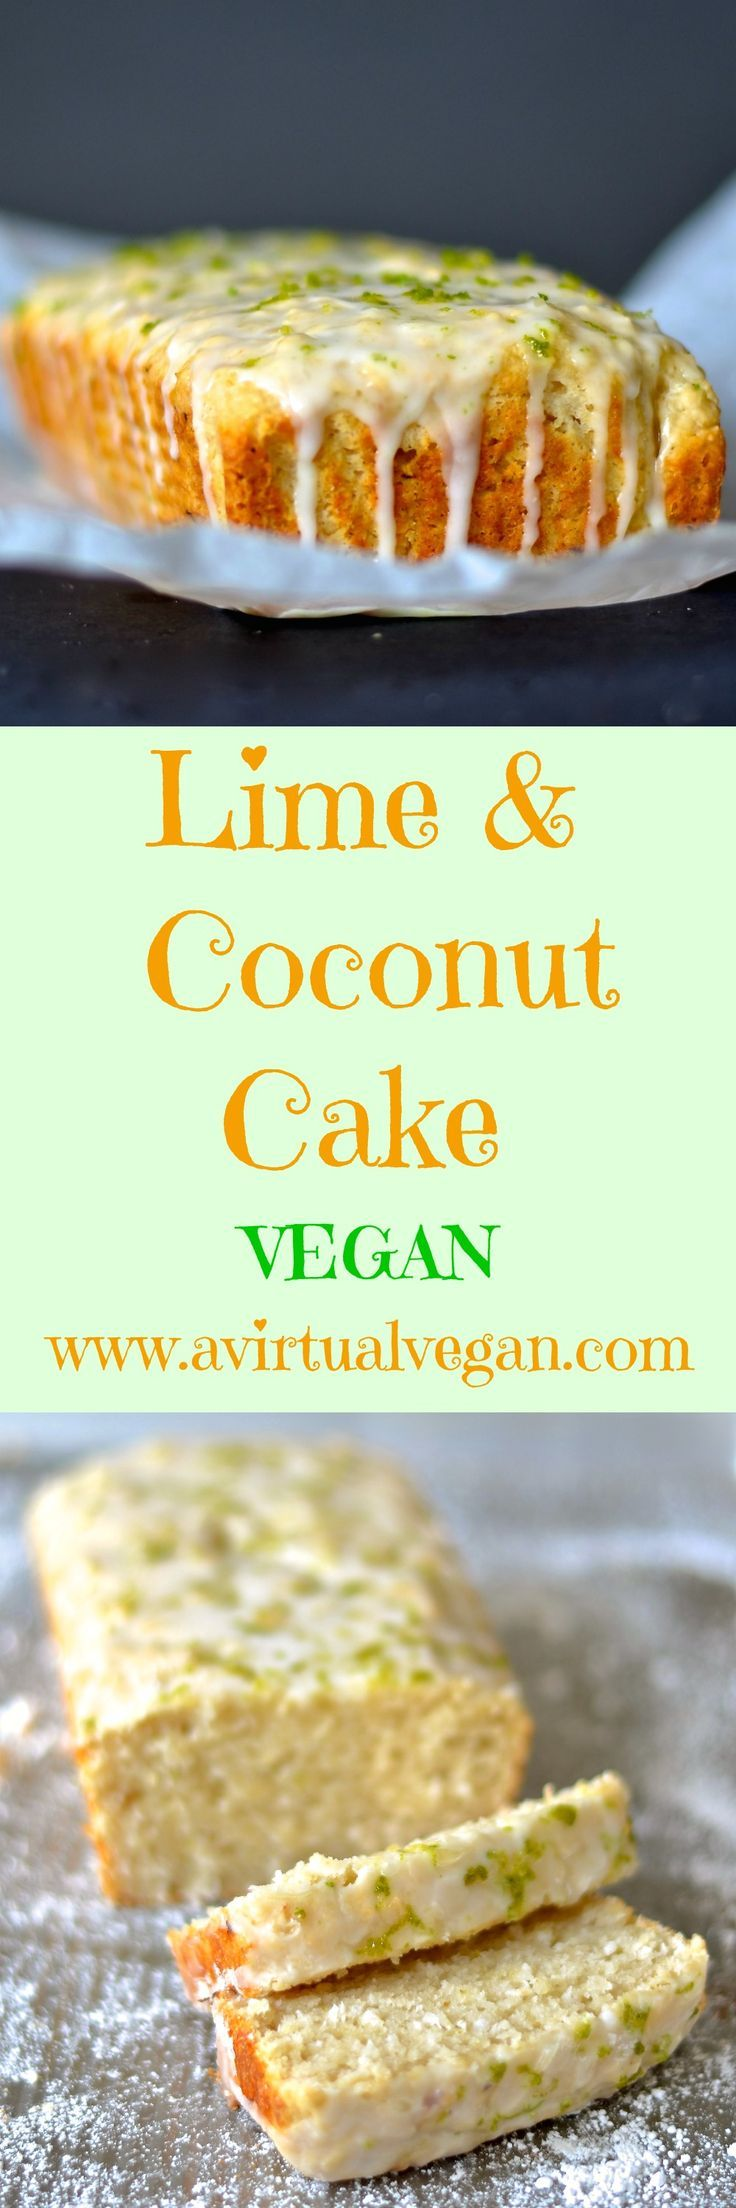 Citrus and tropical flavours combine in this light & delicious Lime & Coconut Cake with a sticky, zesty glaze. Dairy & egg free.